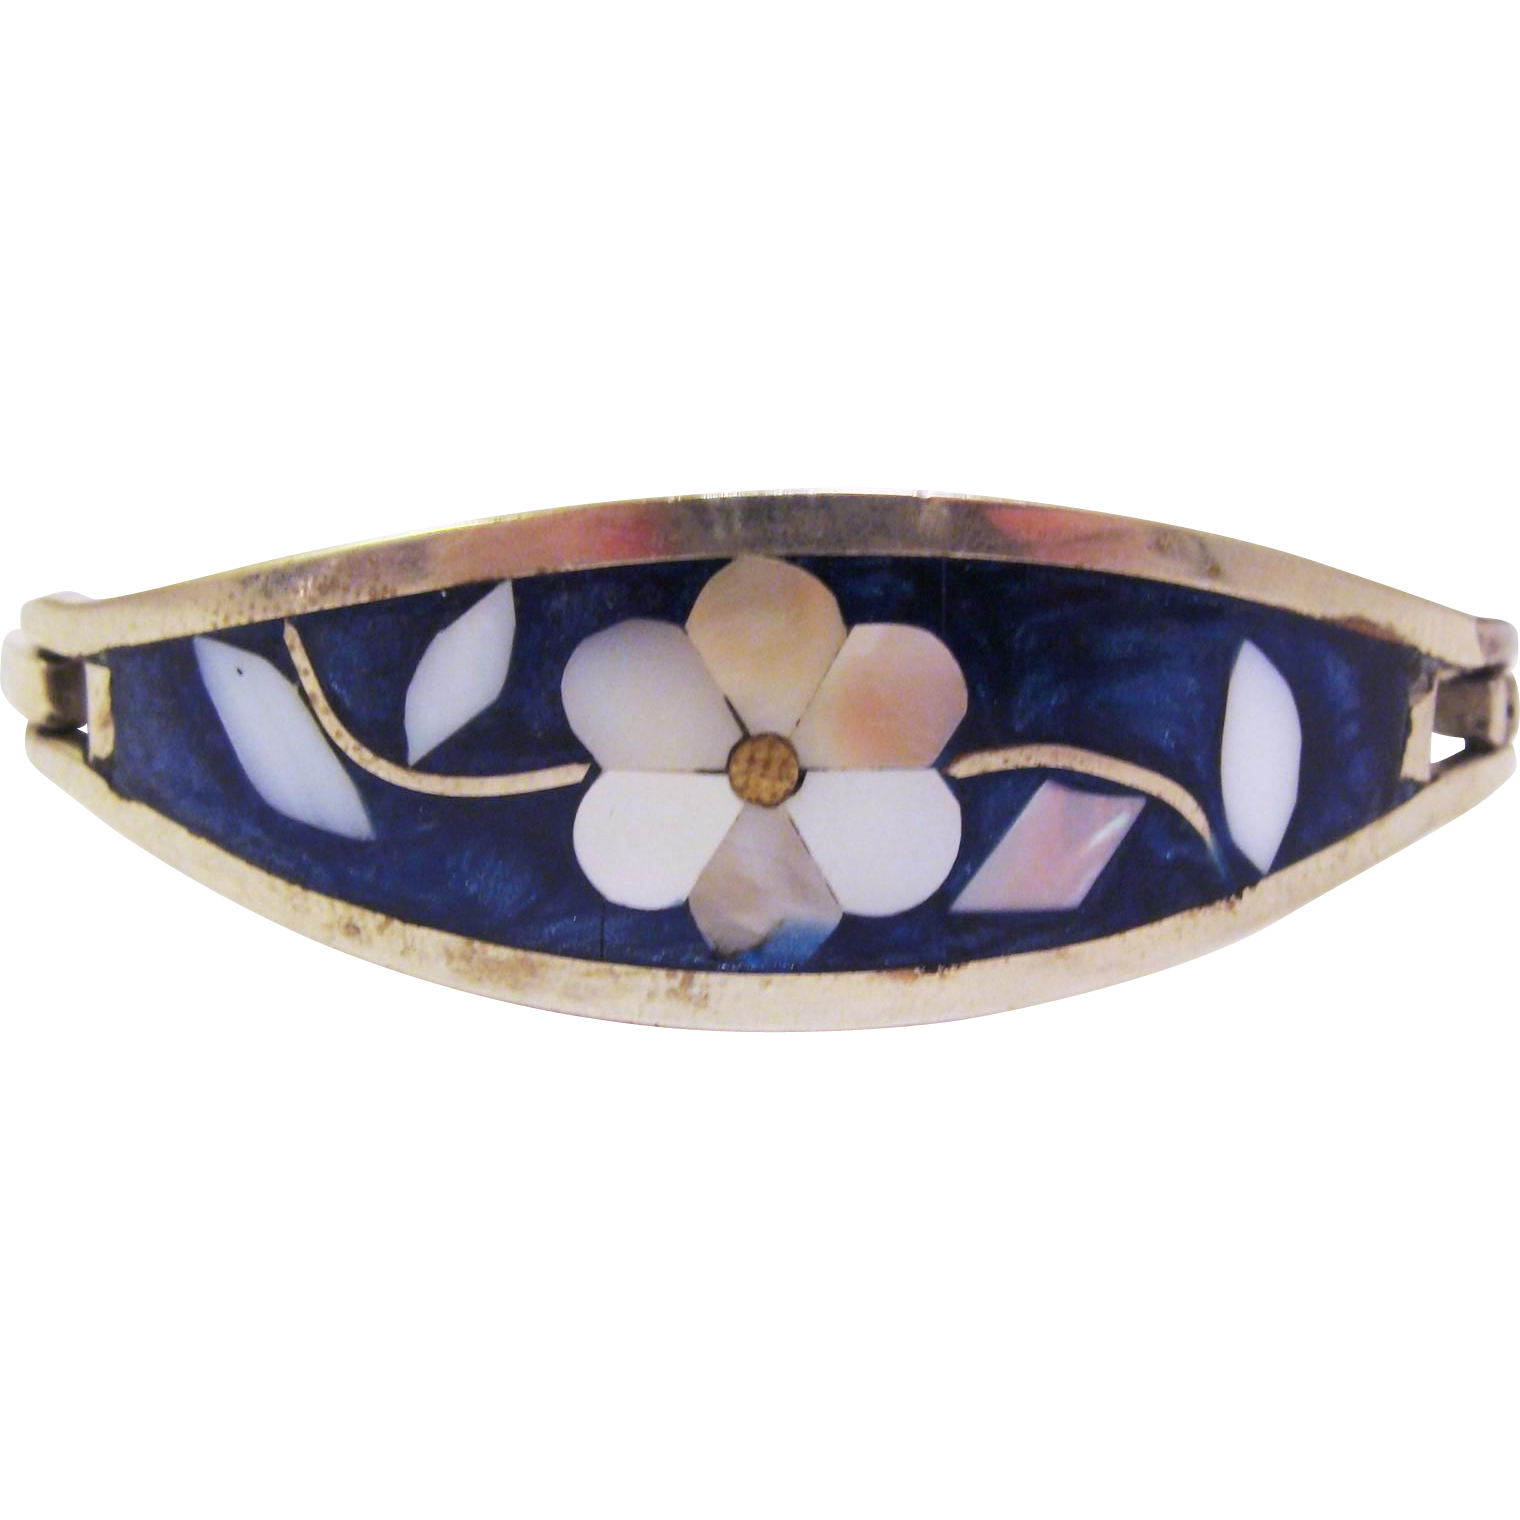 Sterling Silver Rigid Cuff Bracelet with Inlay Mother of Pearl Flower